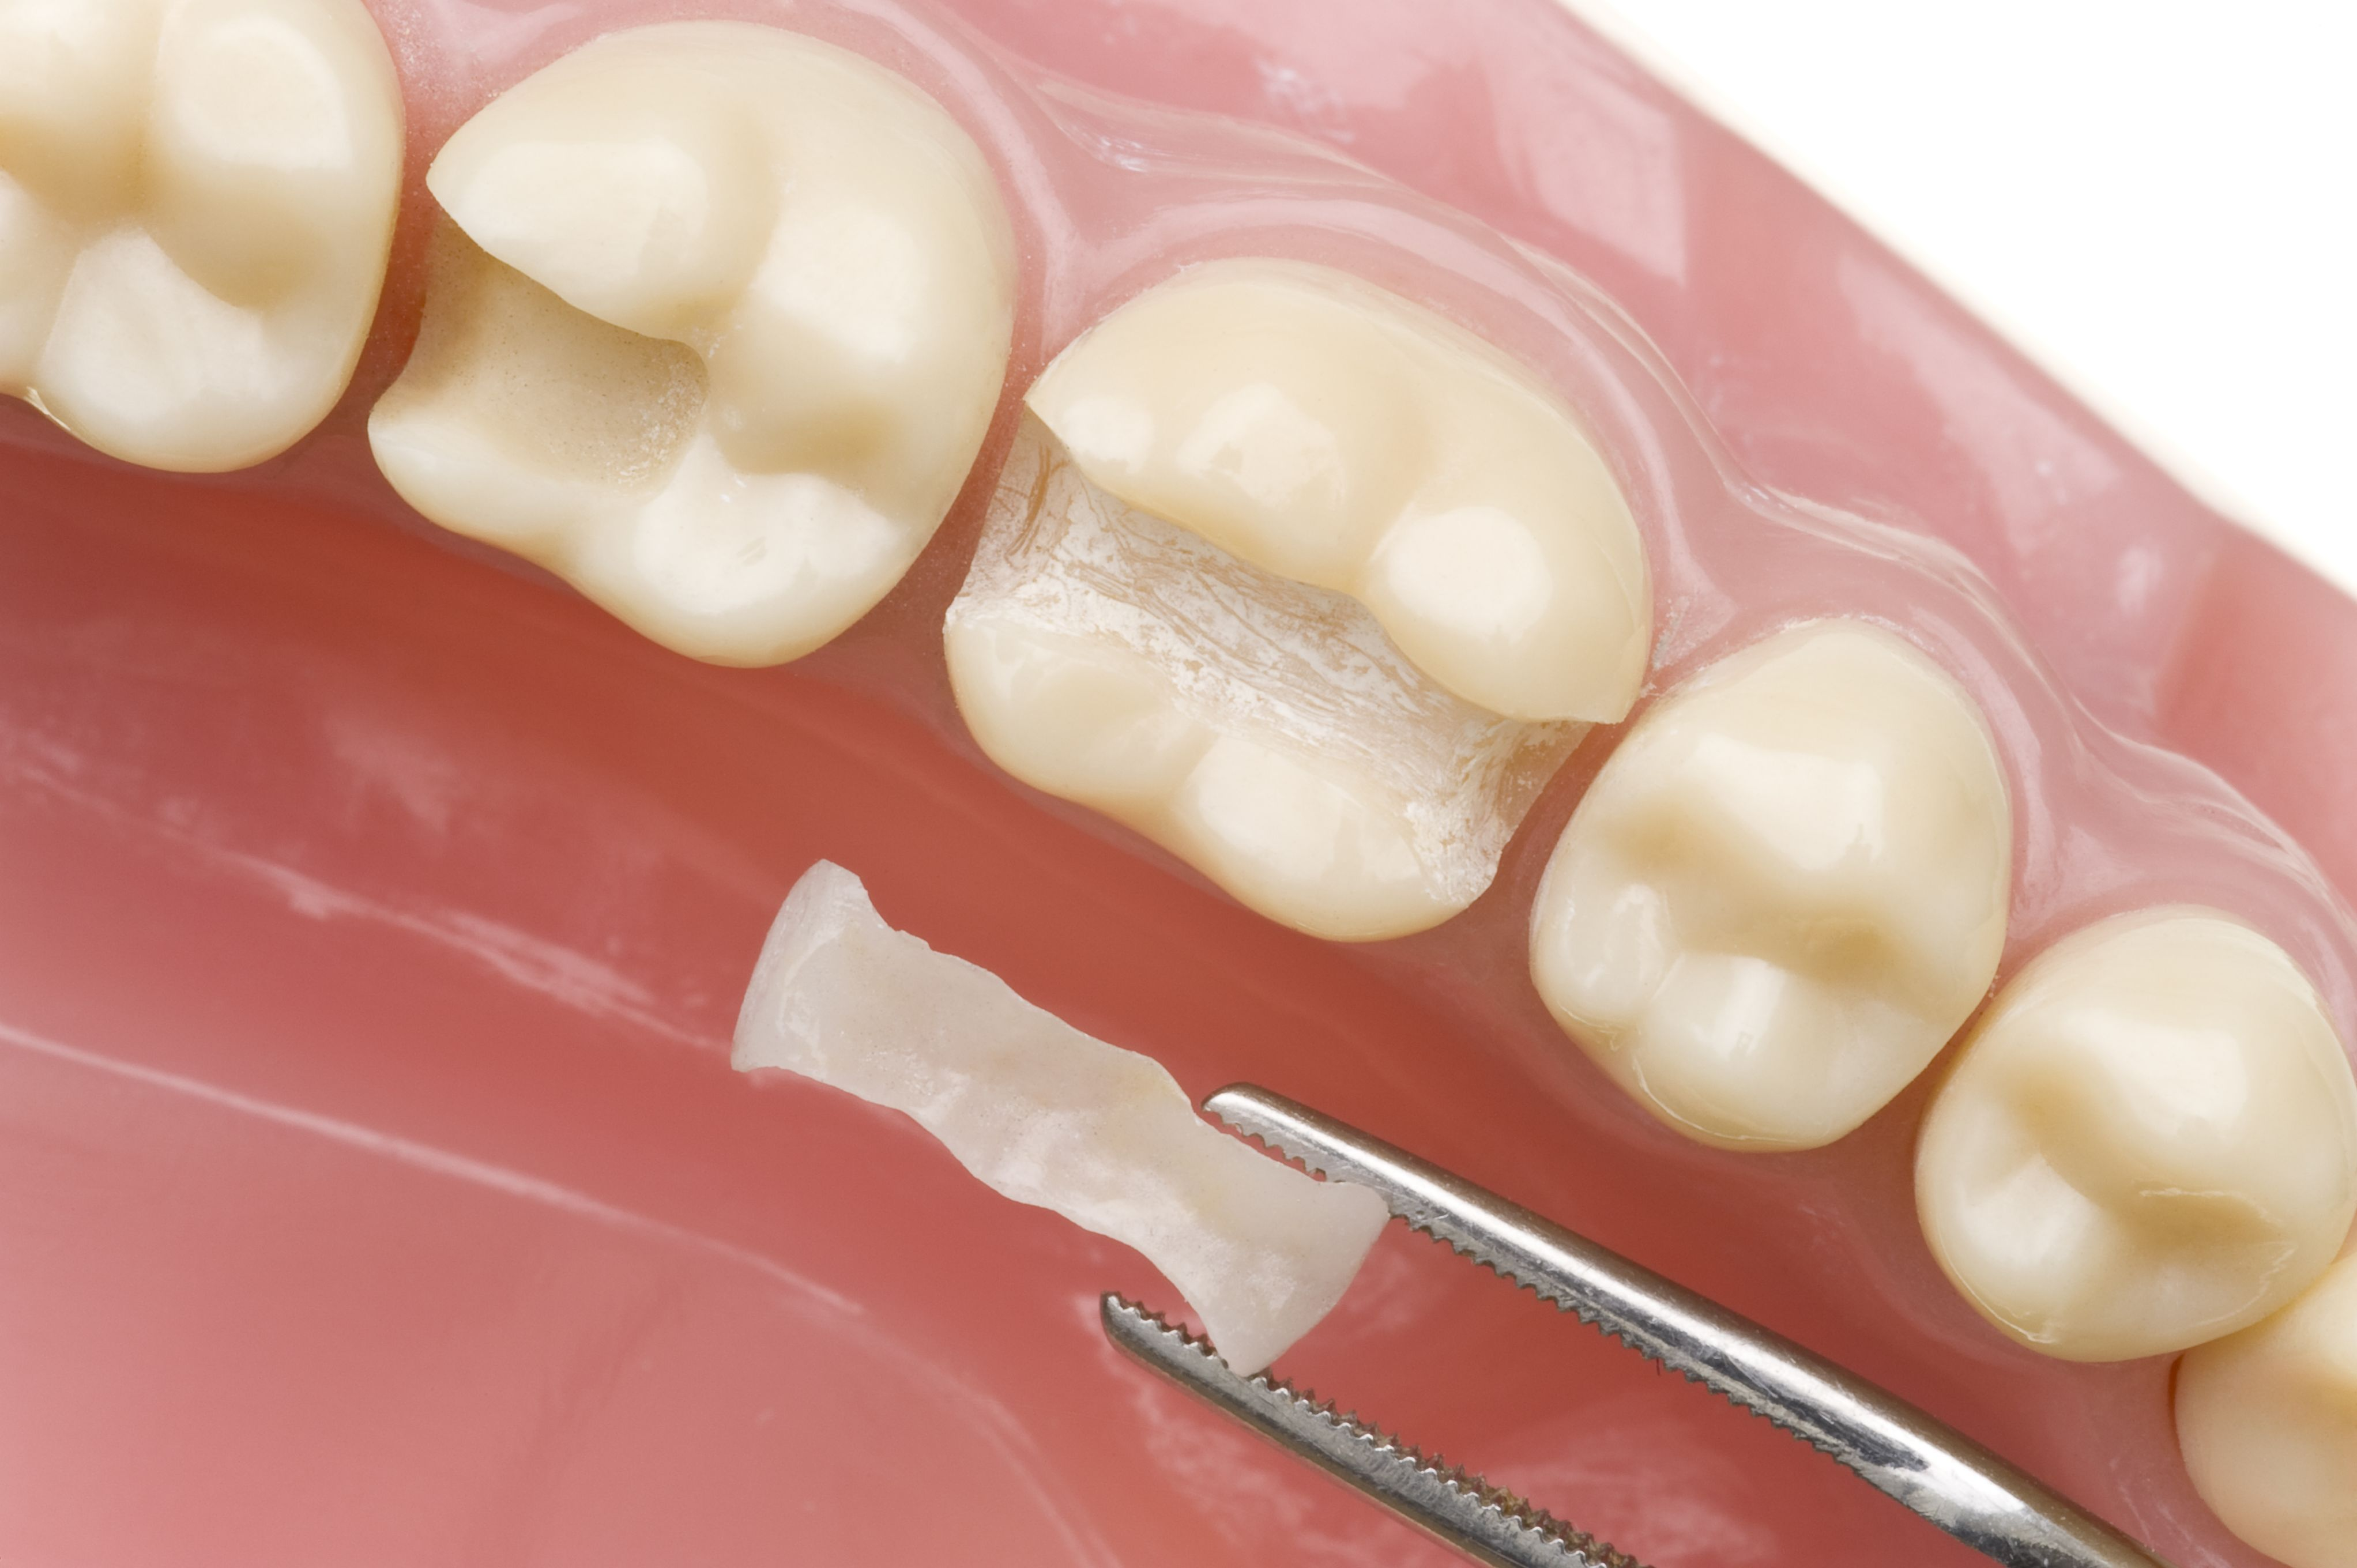 Dental inlay being set into tooth model